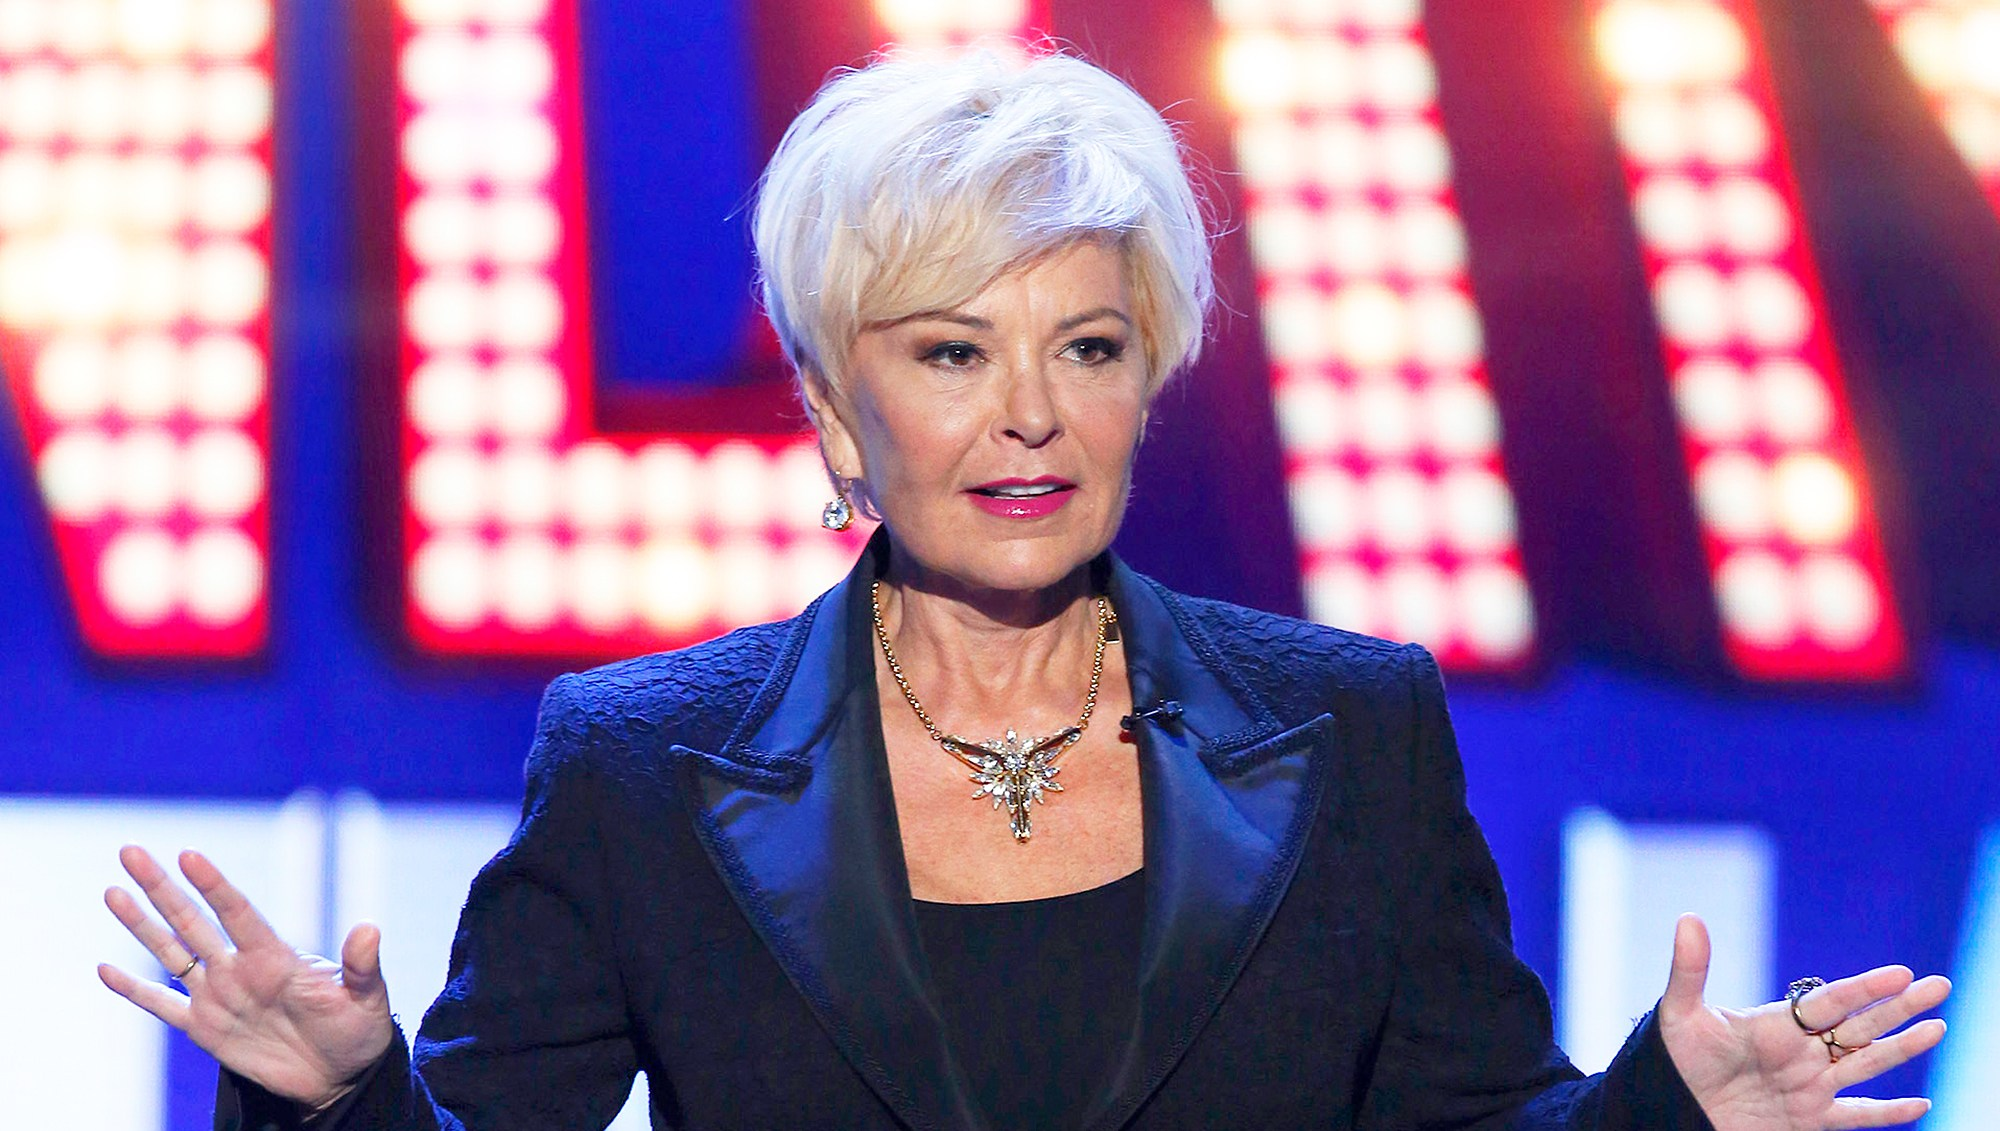 Roseanne Barr on 'Last Comic Standing'